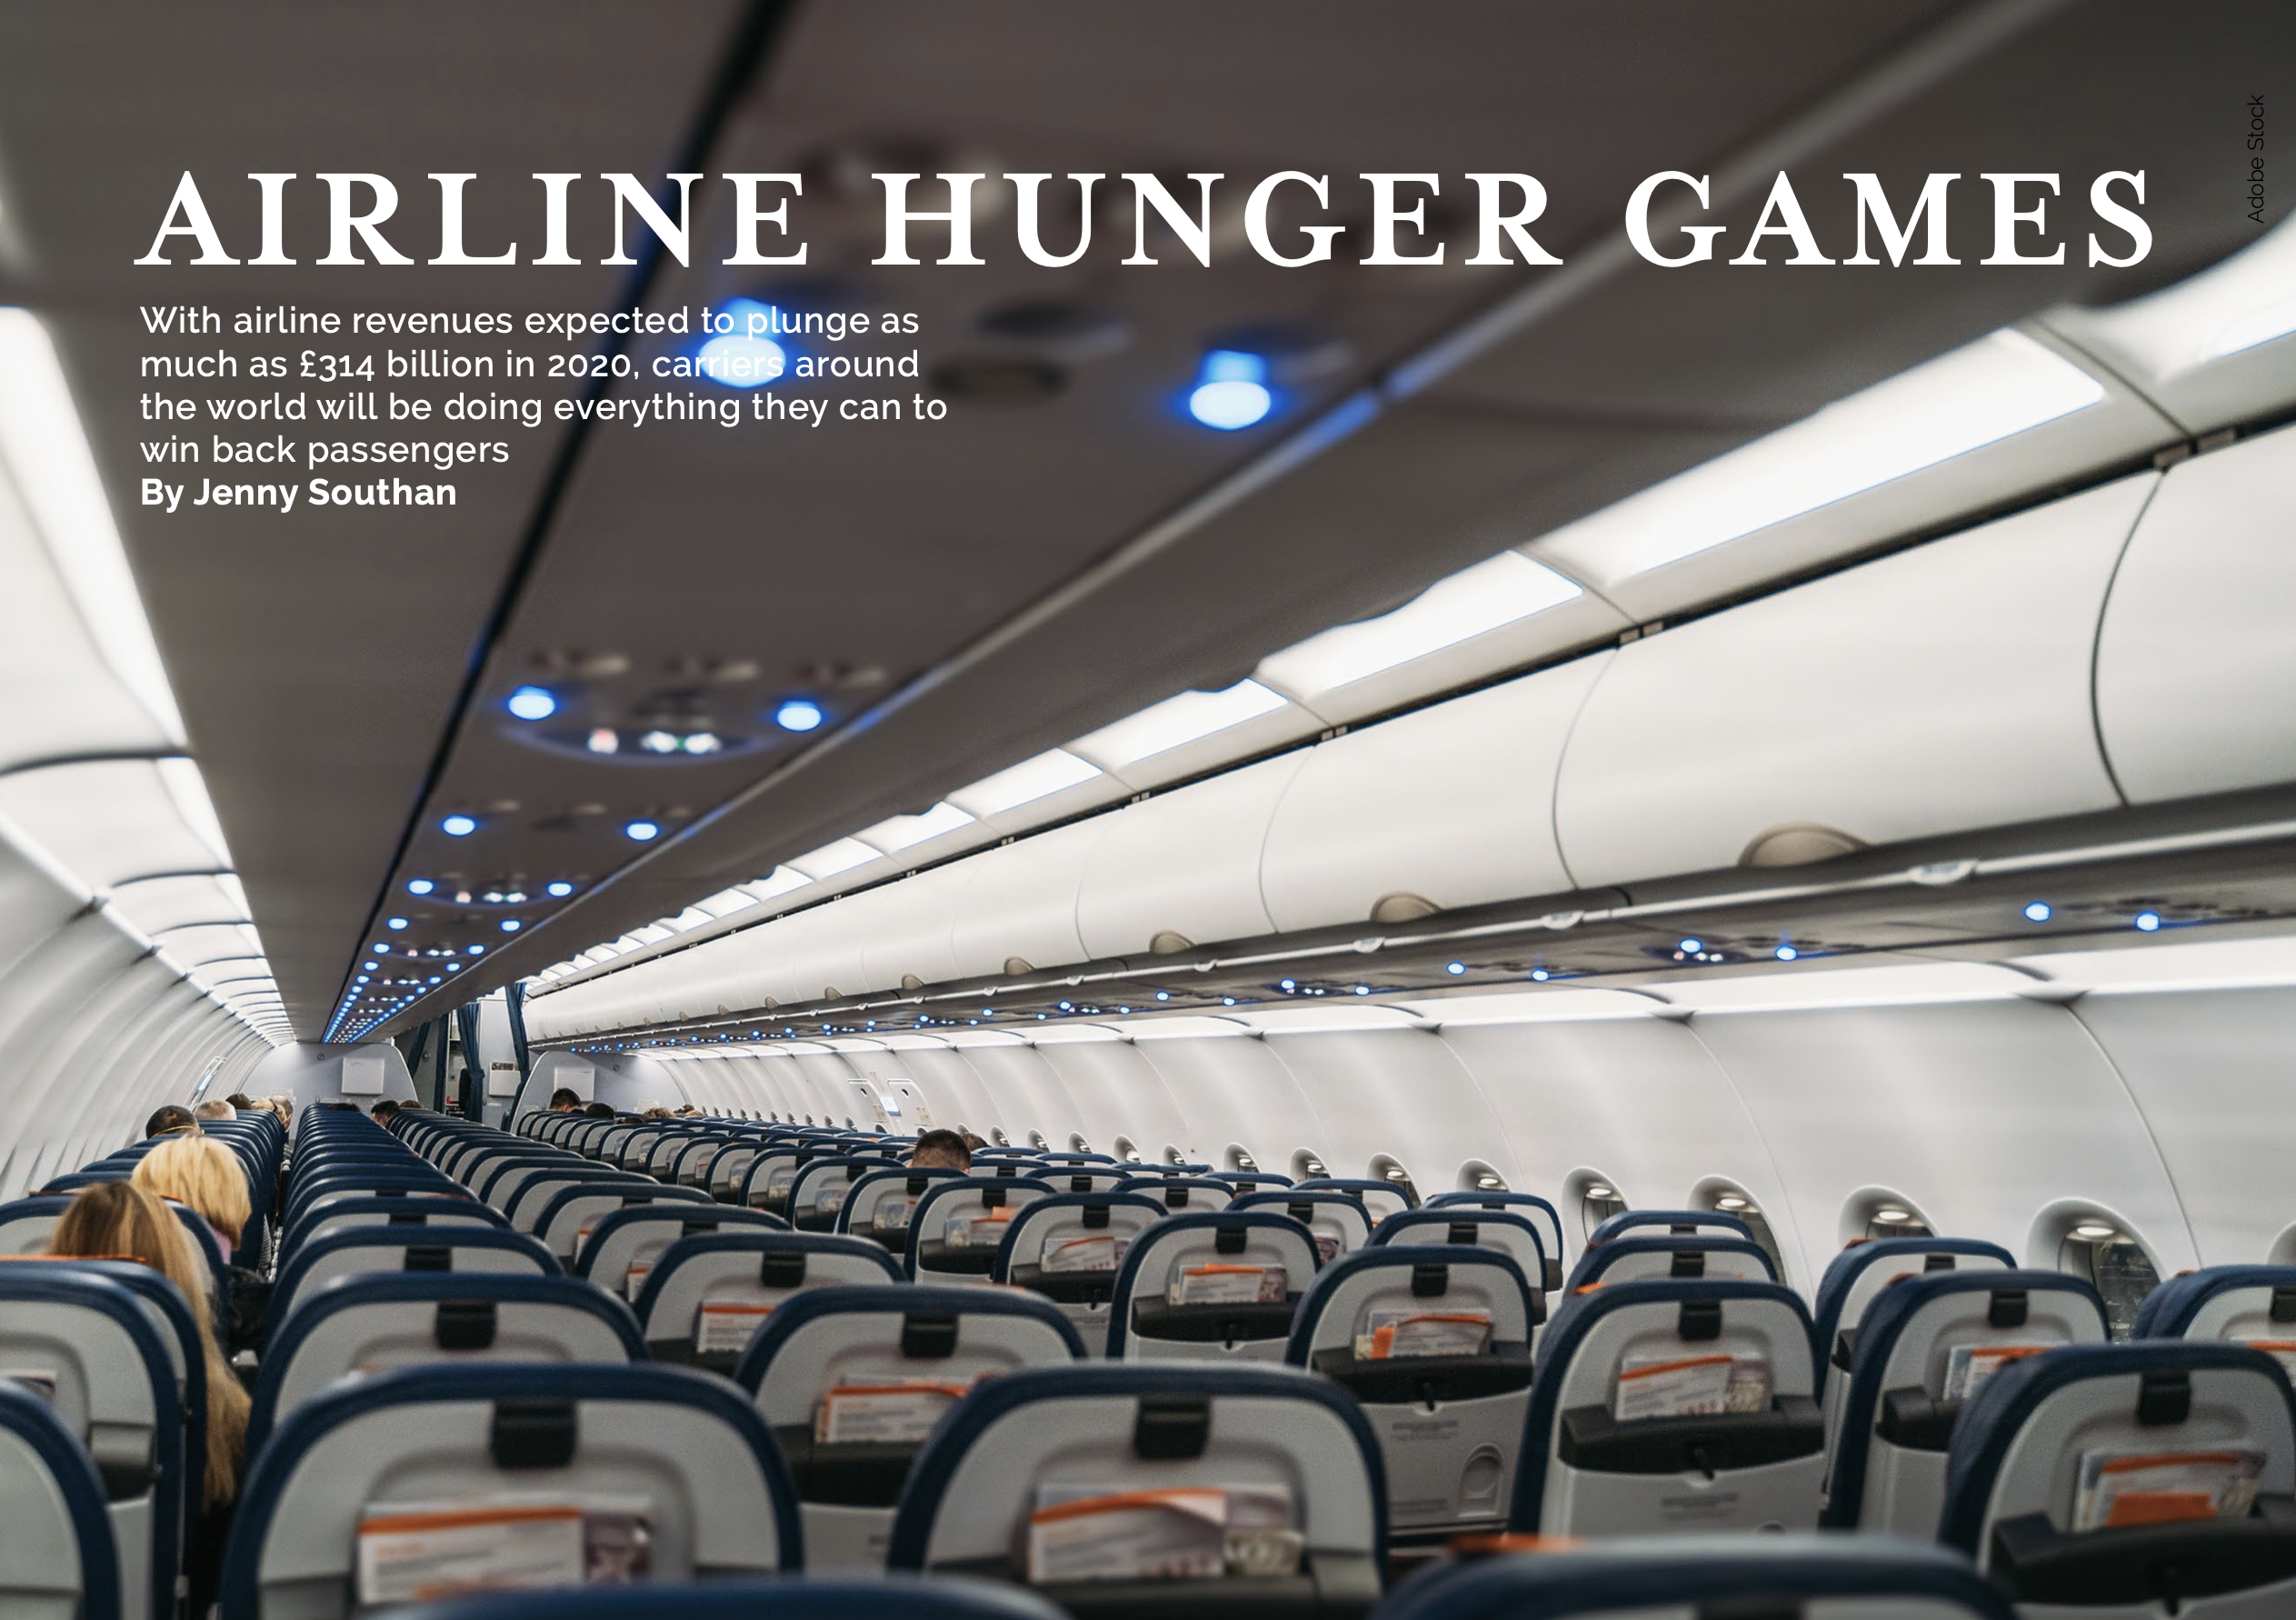 Airline Hunger Games